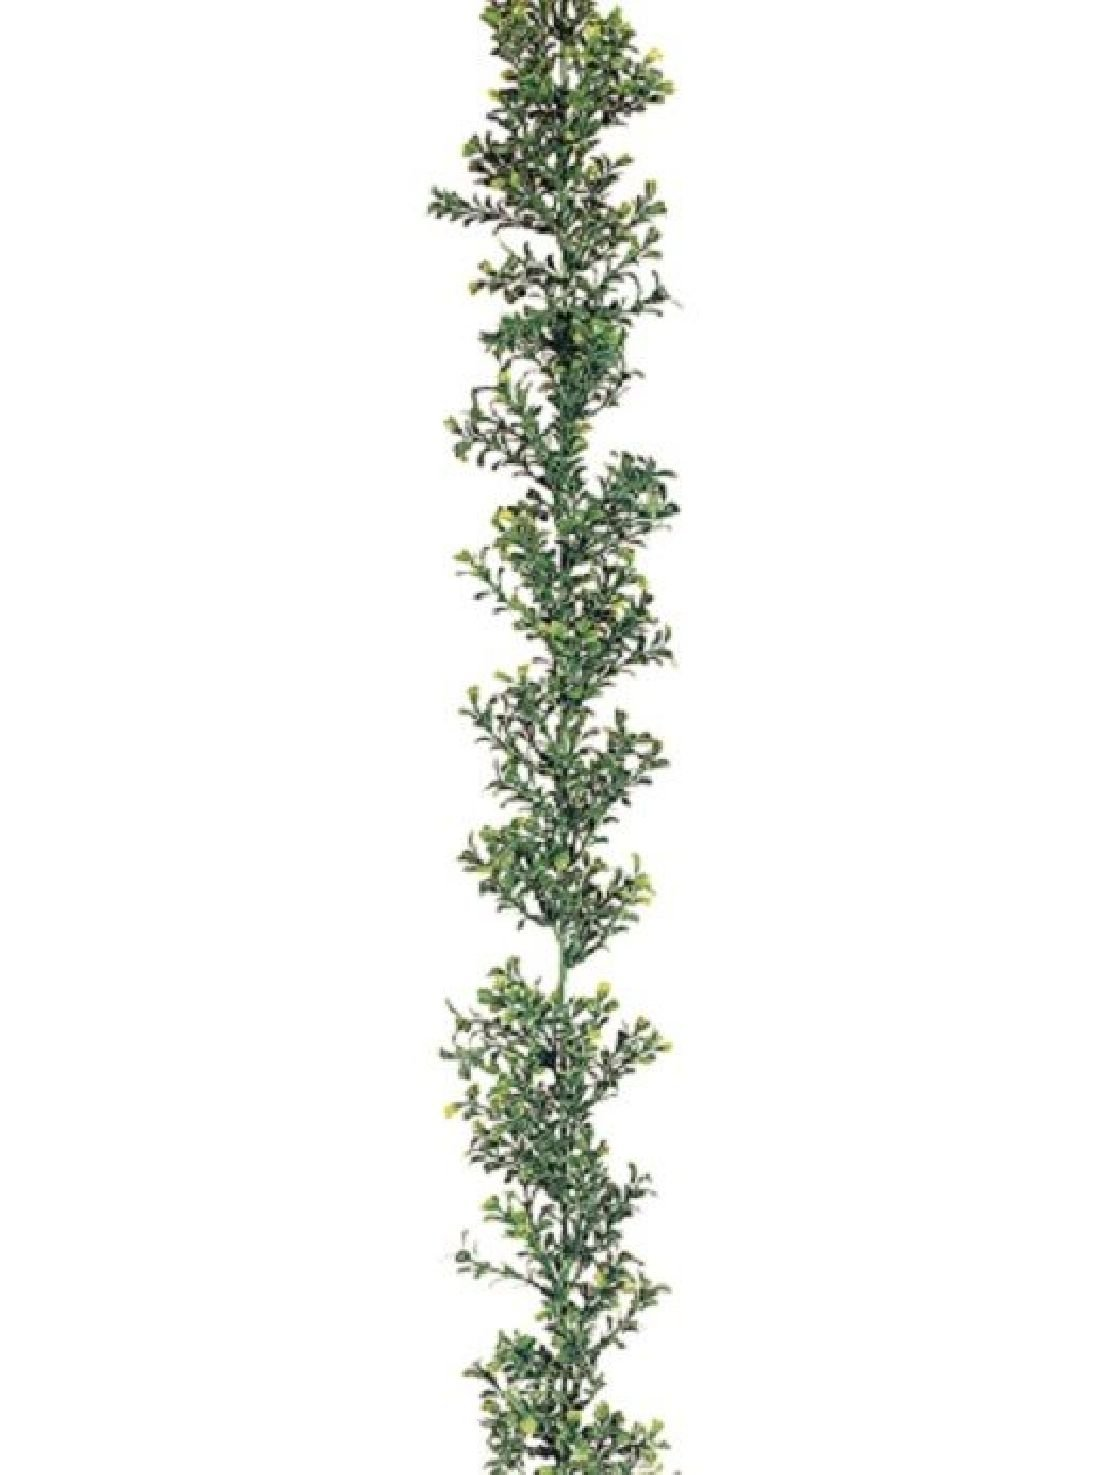 6' Artificial Boxwood Garland (Pack of 12) In Outdoor 72'' Silk Plant Decor by Black Decor Home